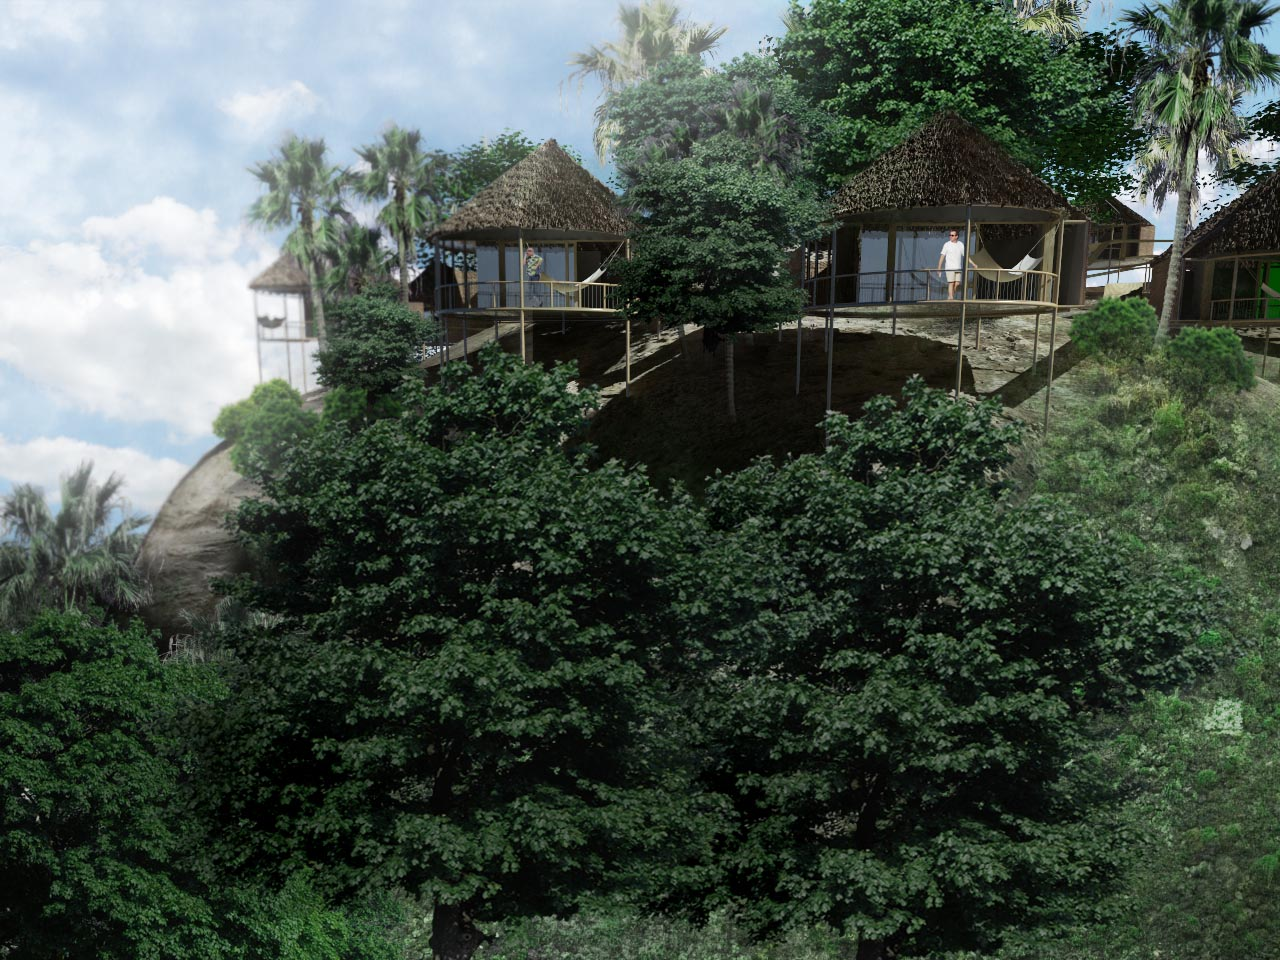 costa-rica-sustainable-architecture-sostenibile-mauro-manca-off-grid-bamboo-forest-efficiency-energy